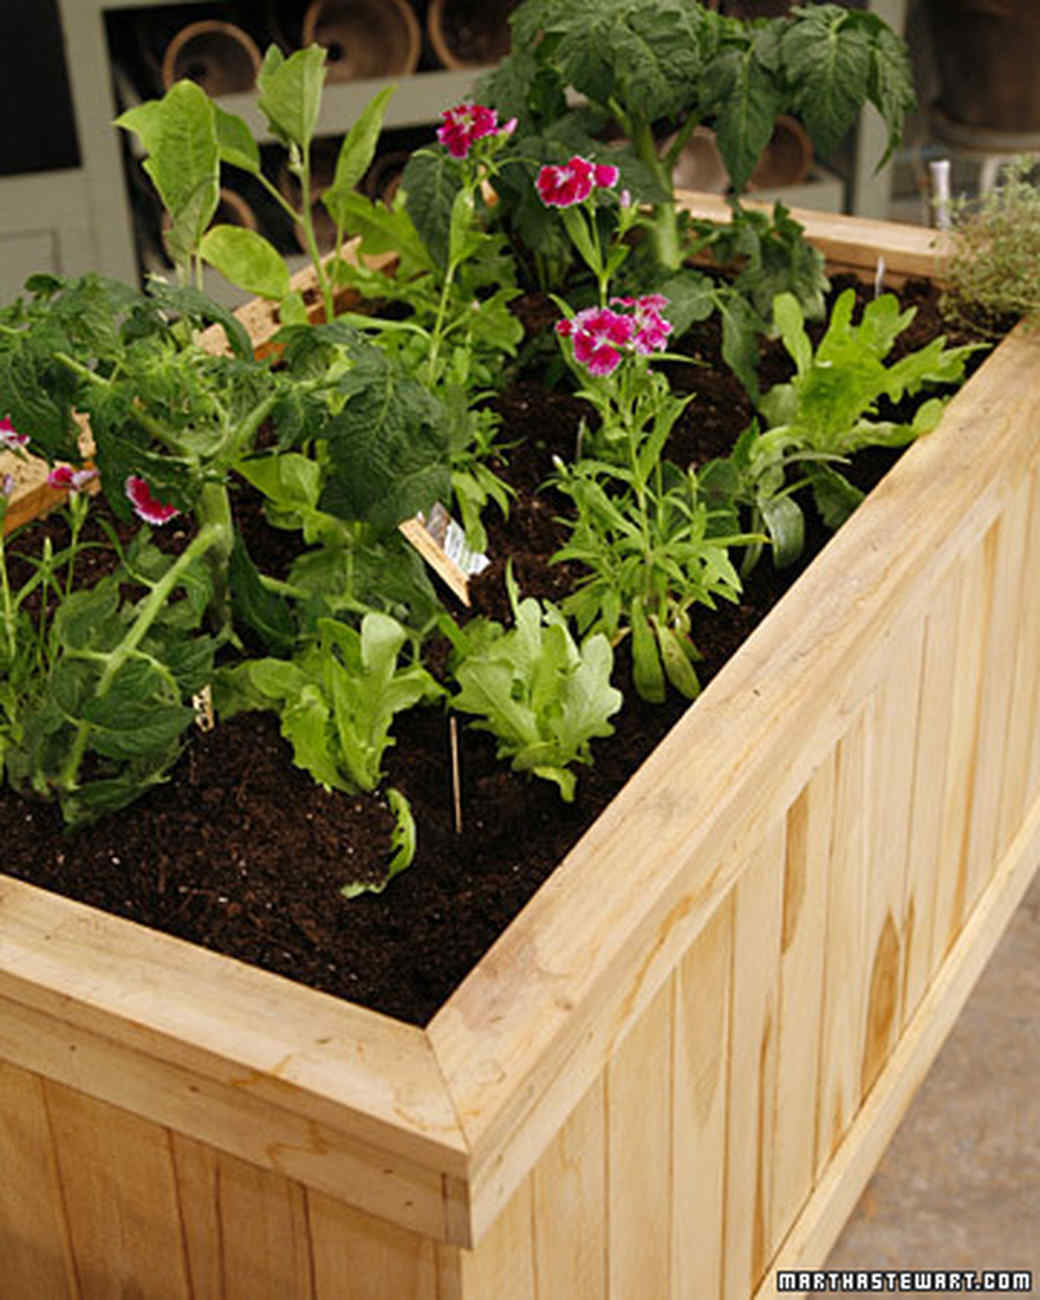 Vegetable garden ideas martha stewart for Balcony vegetable garden